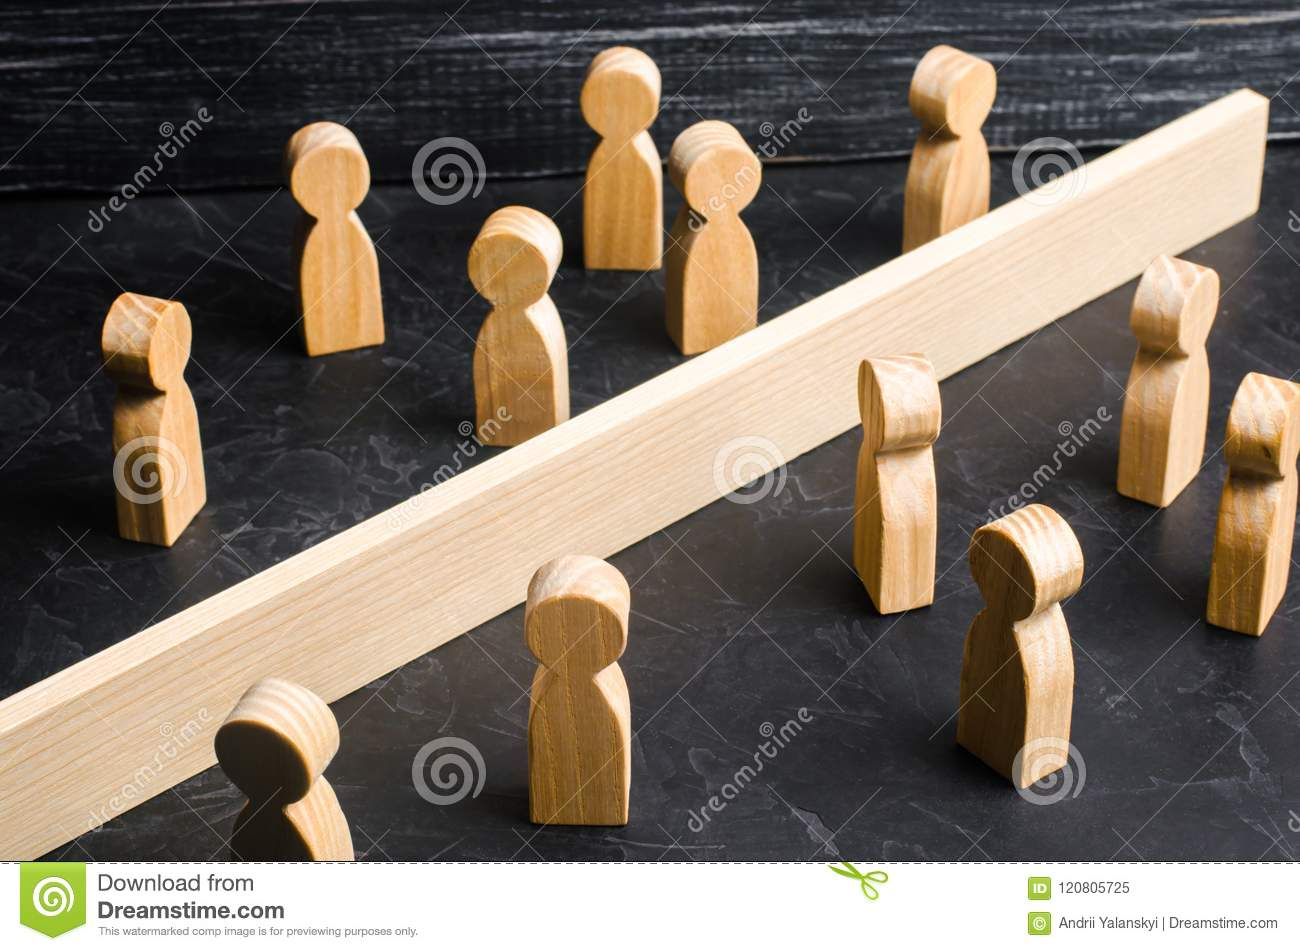 The concept of misunderstanding a barrier in relations denial of society. Barriers between people prejudice. social classes